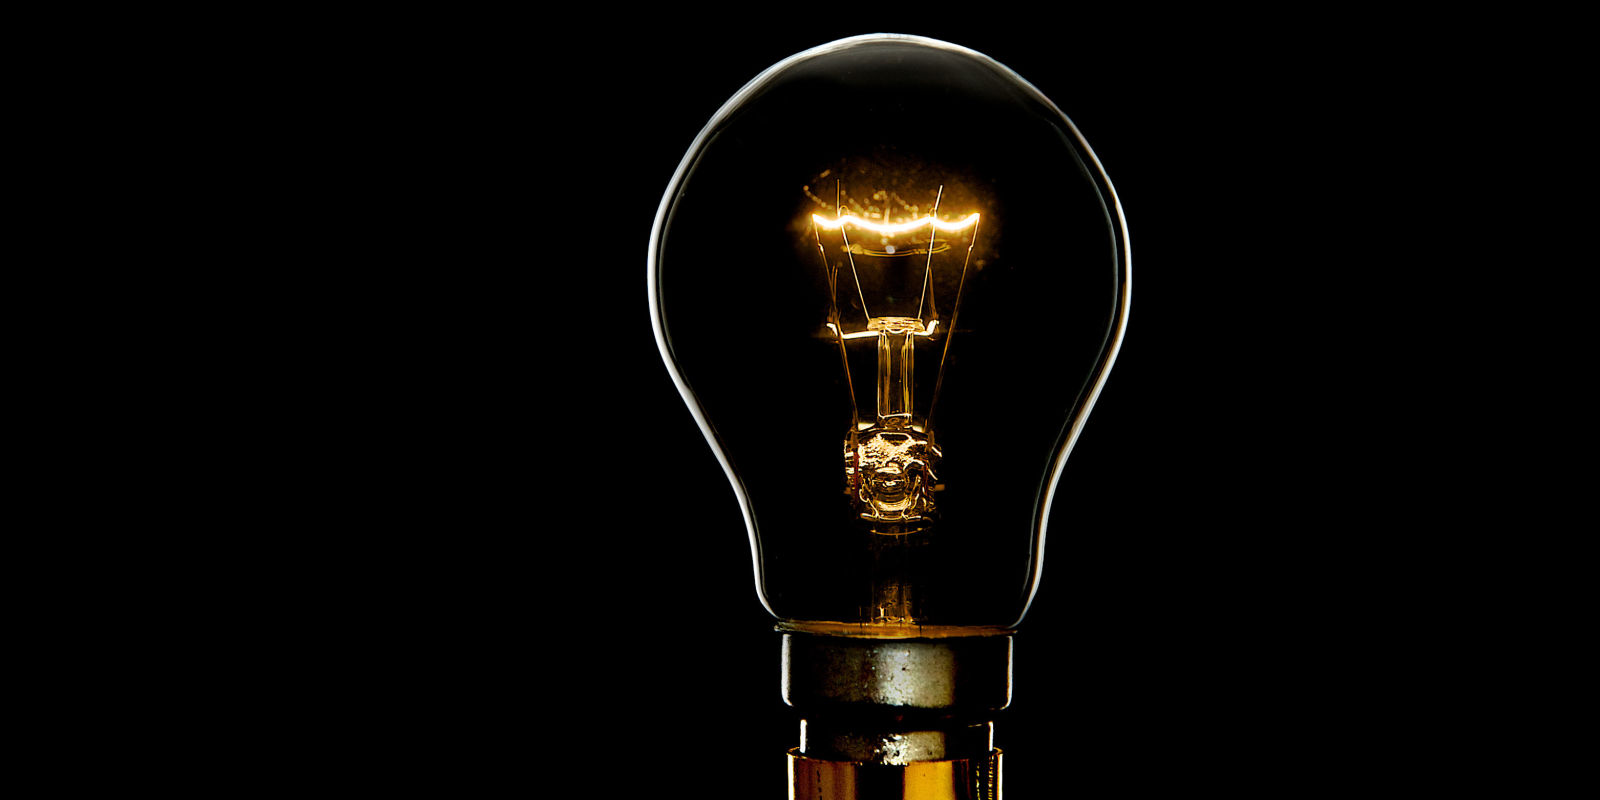 A New Efficient Design Could Save The Incandescent Lightbulb